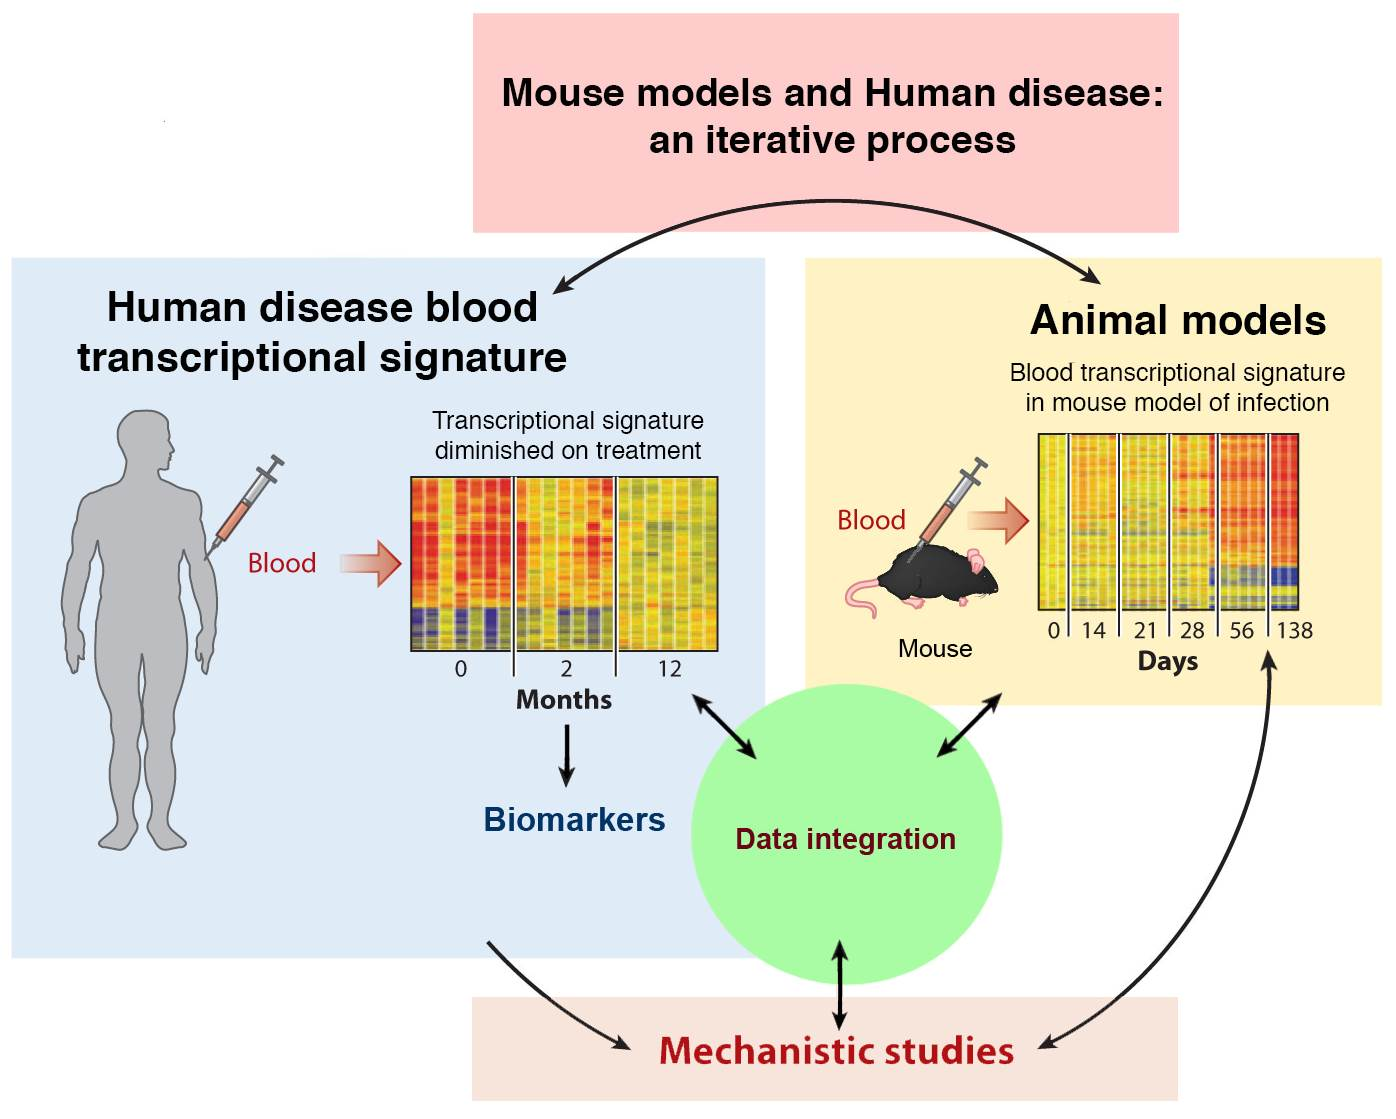 Proposed humanized mice model for respiratory diseases